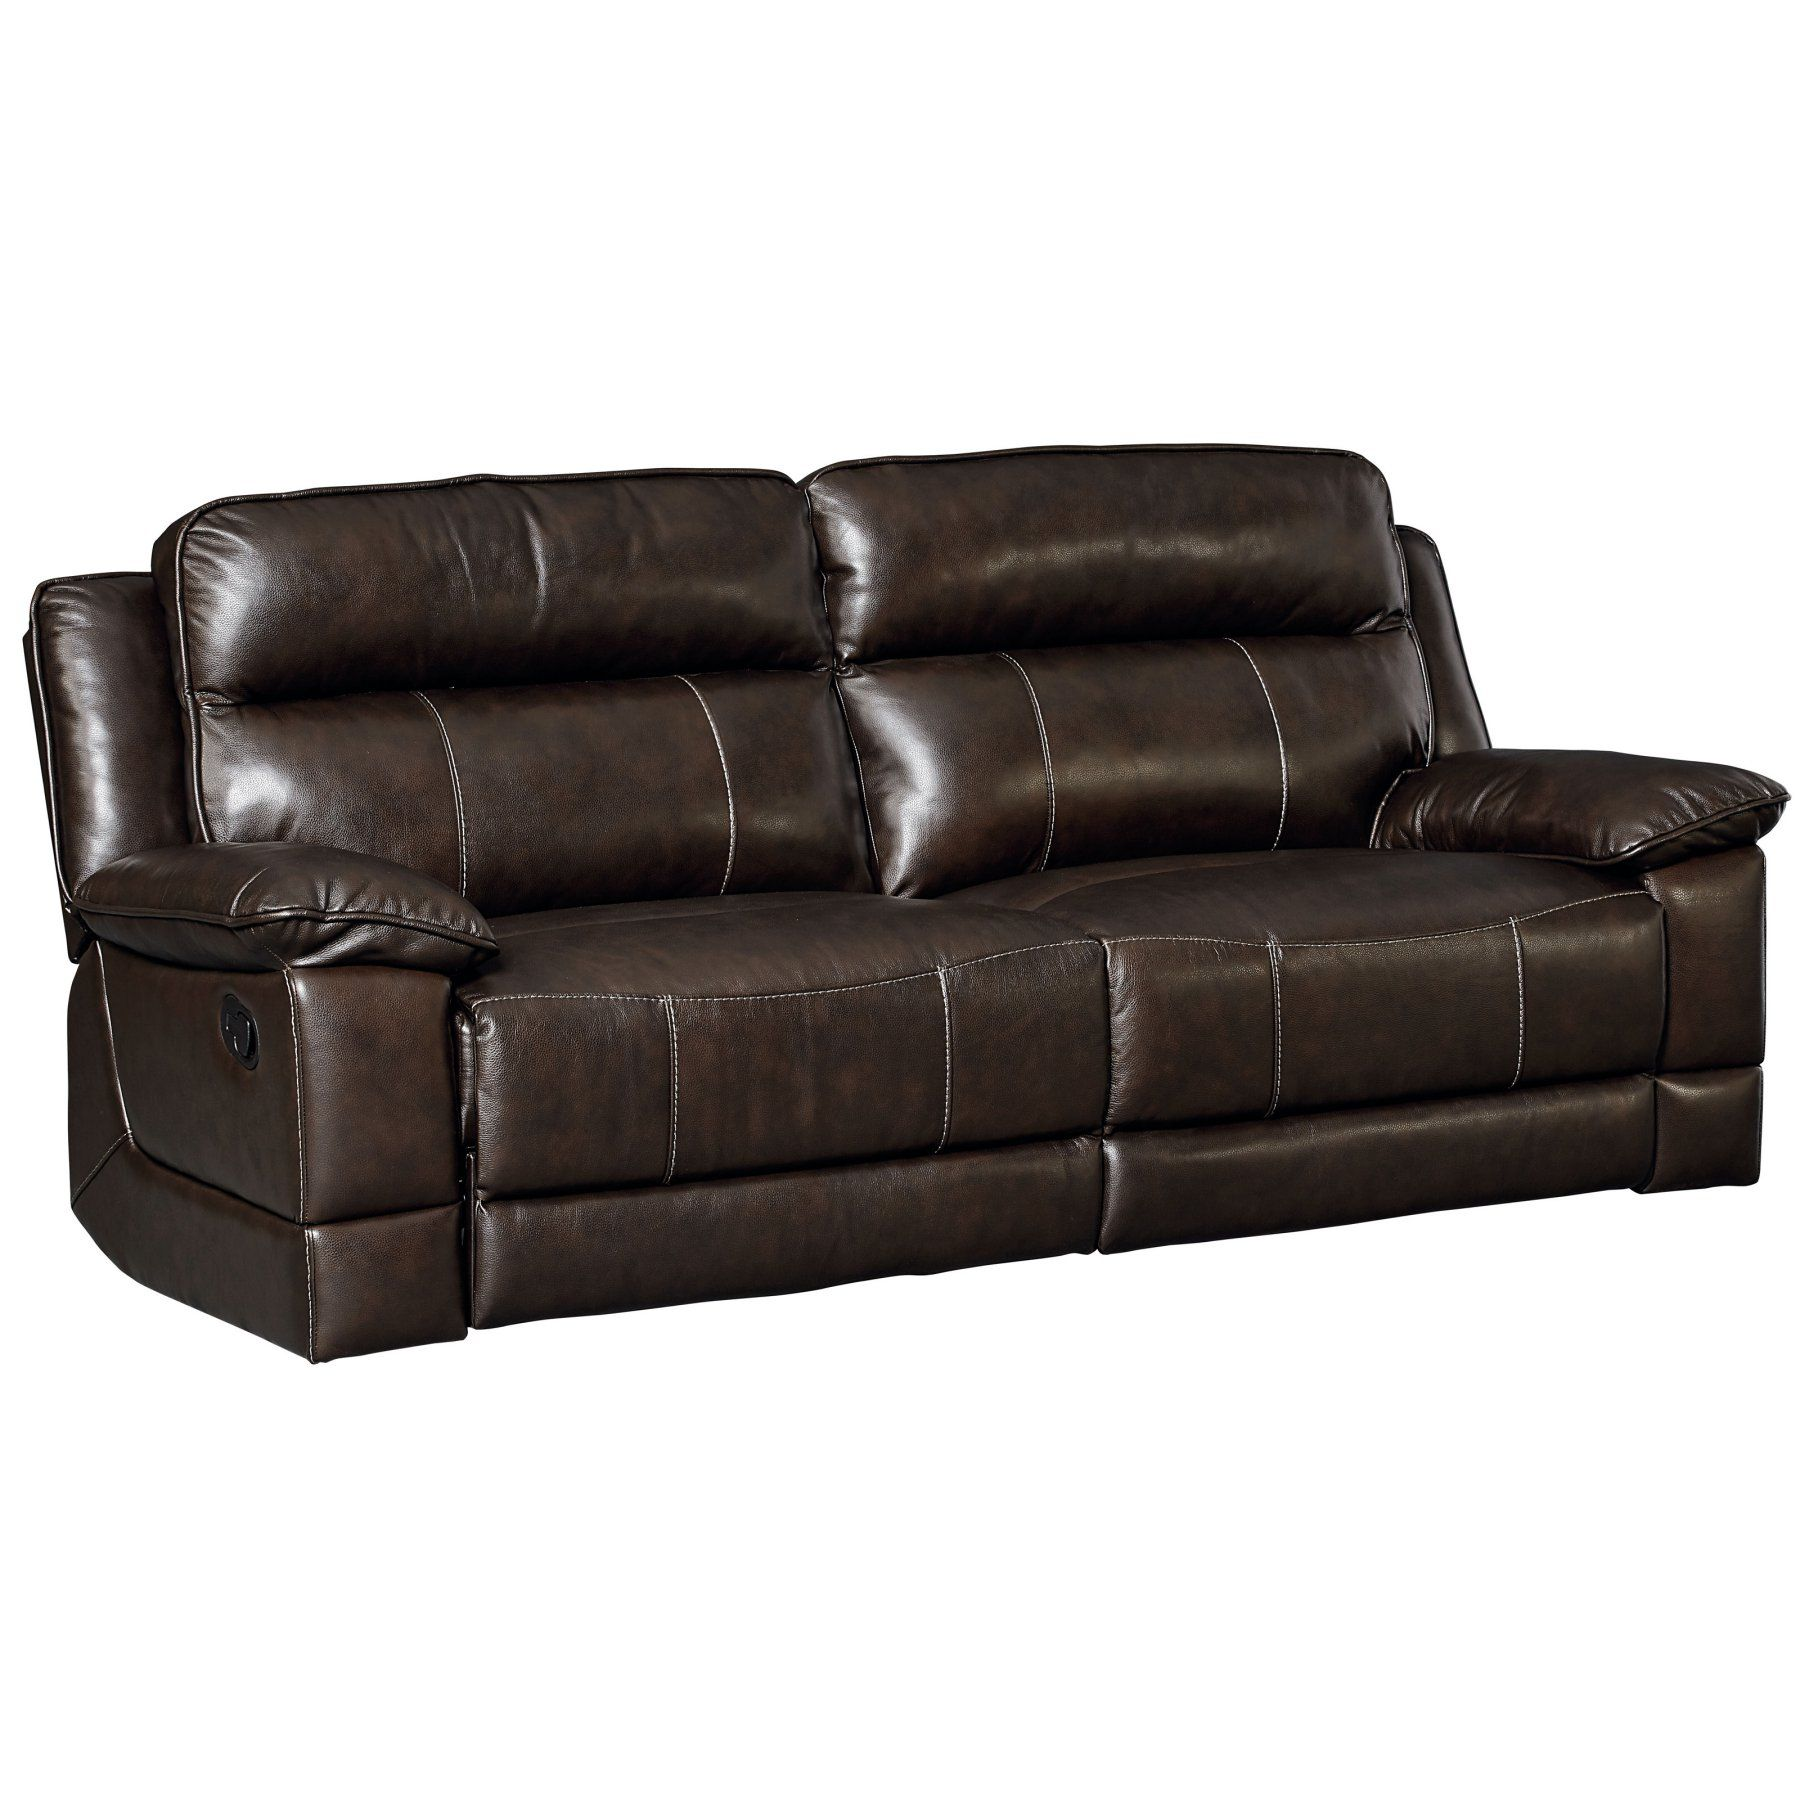 Standard Furniture Sequoia Manual Motion Sofa In Leather 4076392